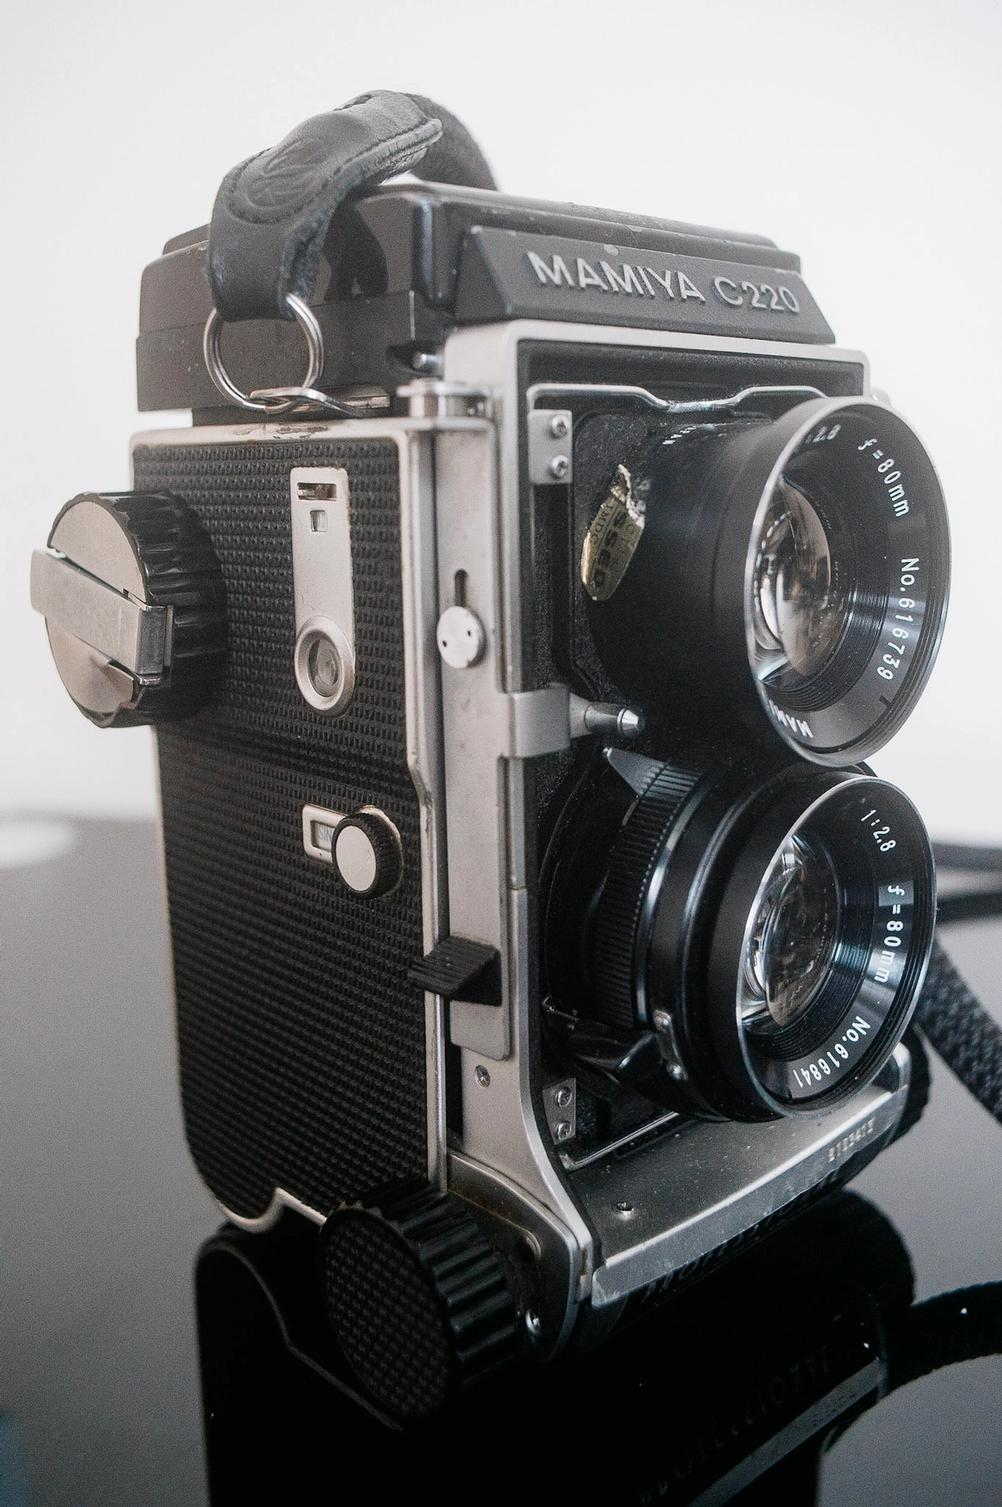 Mamiya C220 film advance knob and shutter release lever.